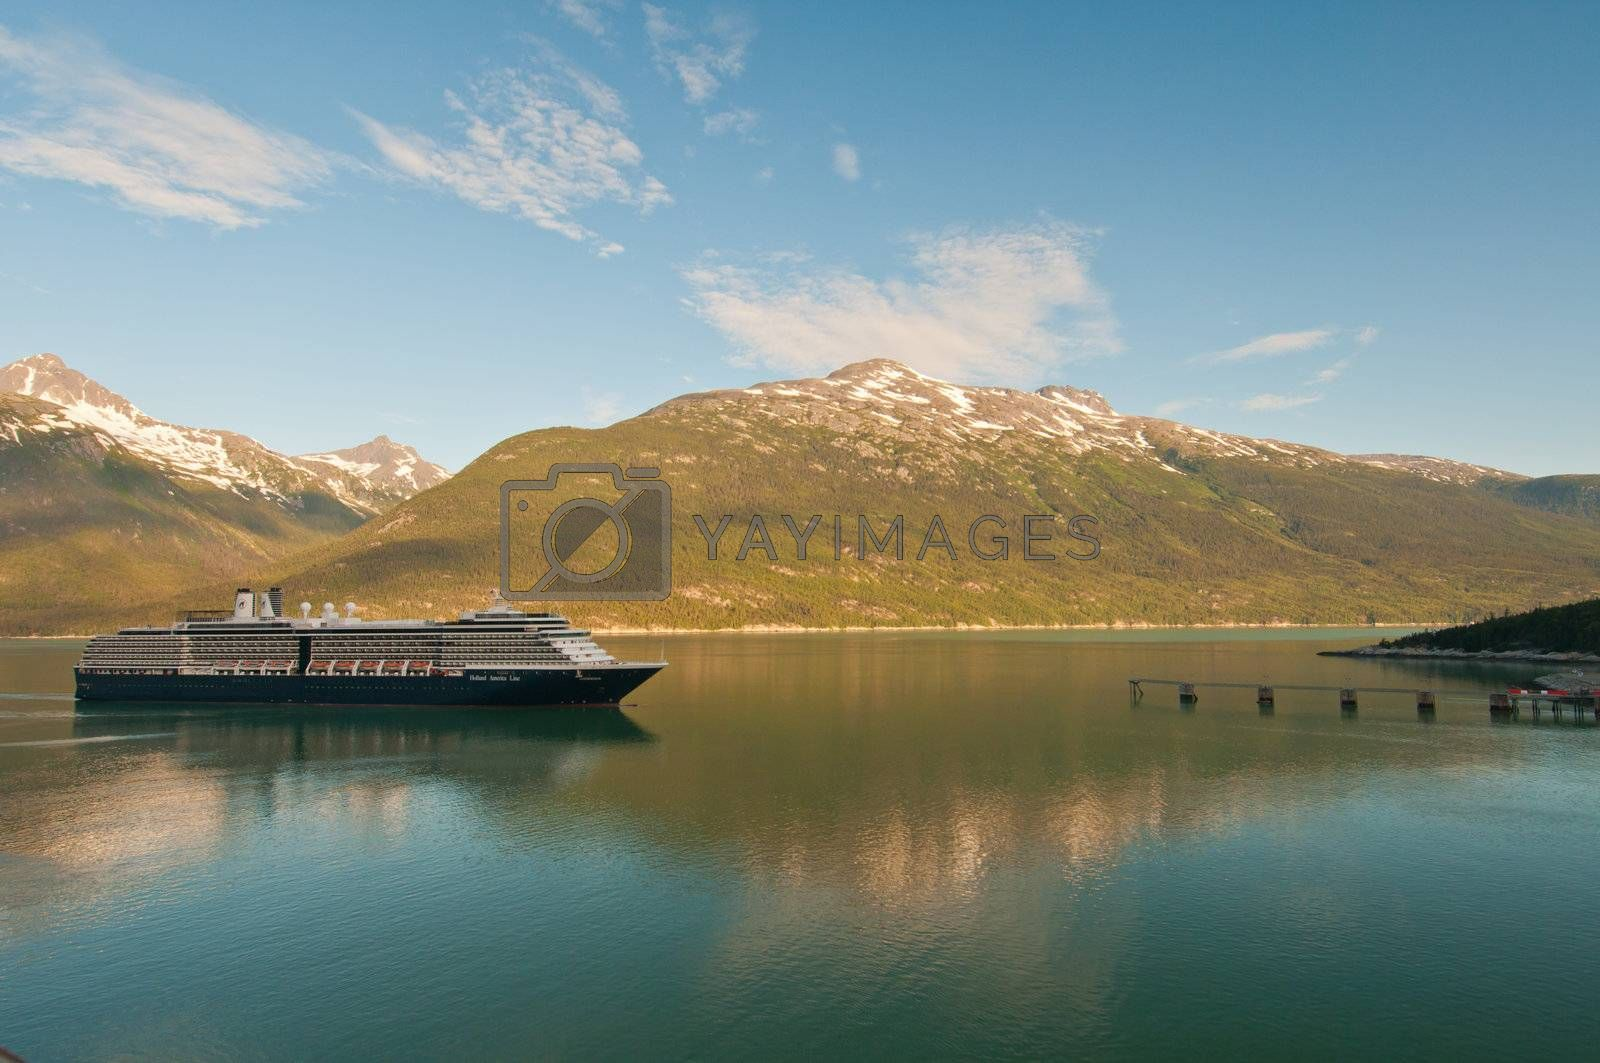 Cruise ship reaching and sailing into detination port with beautiful mountains.